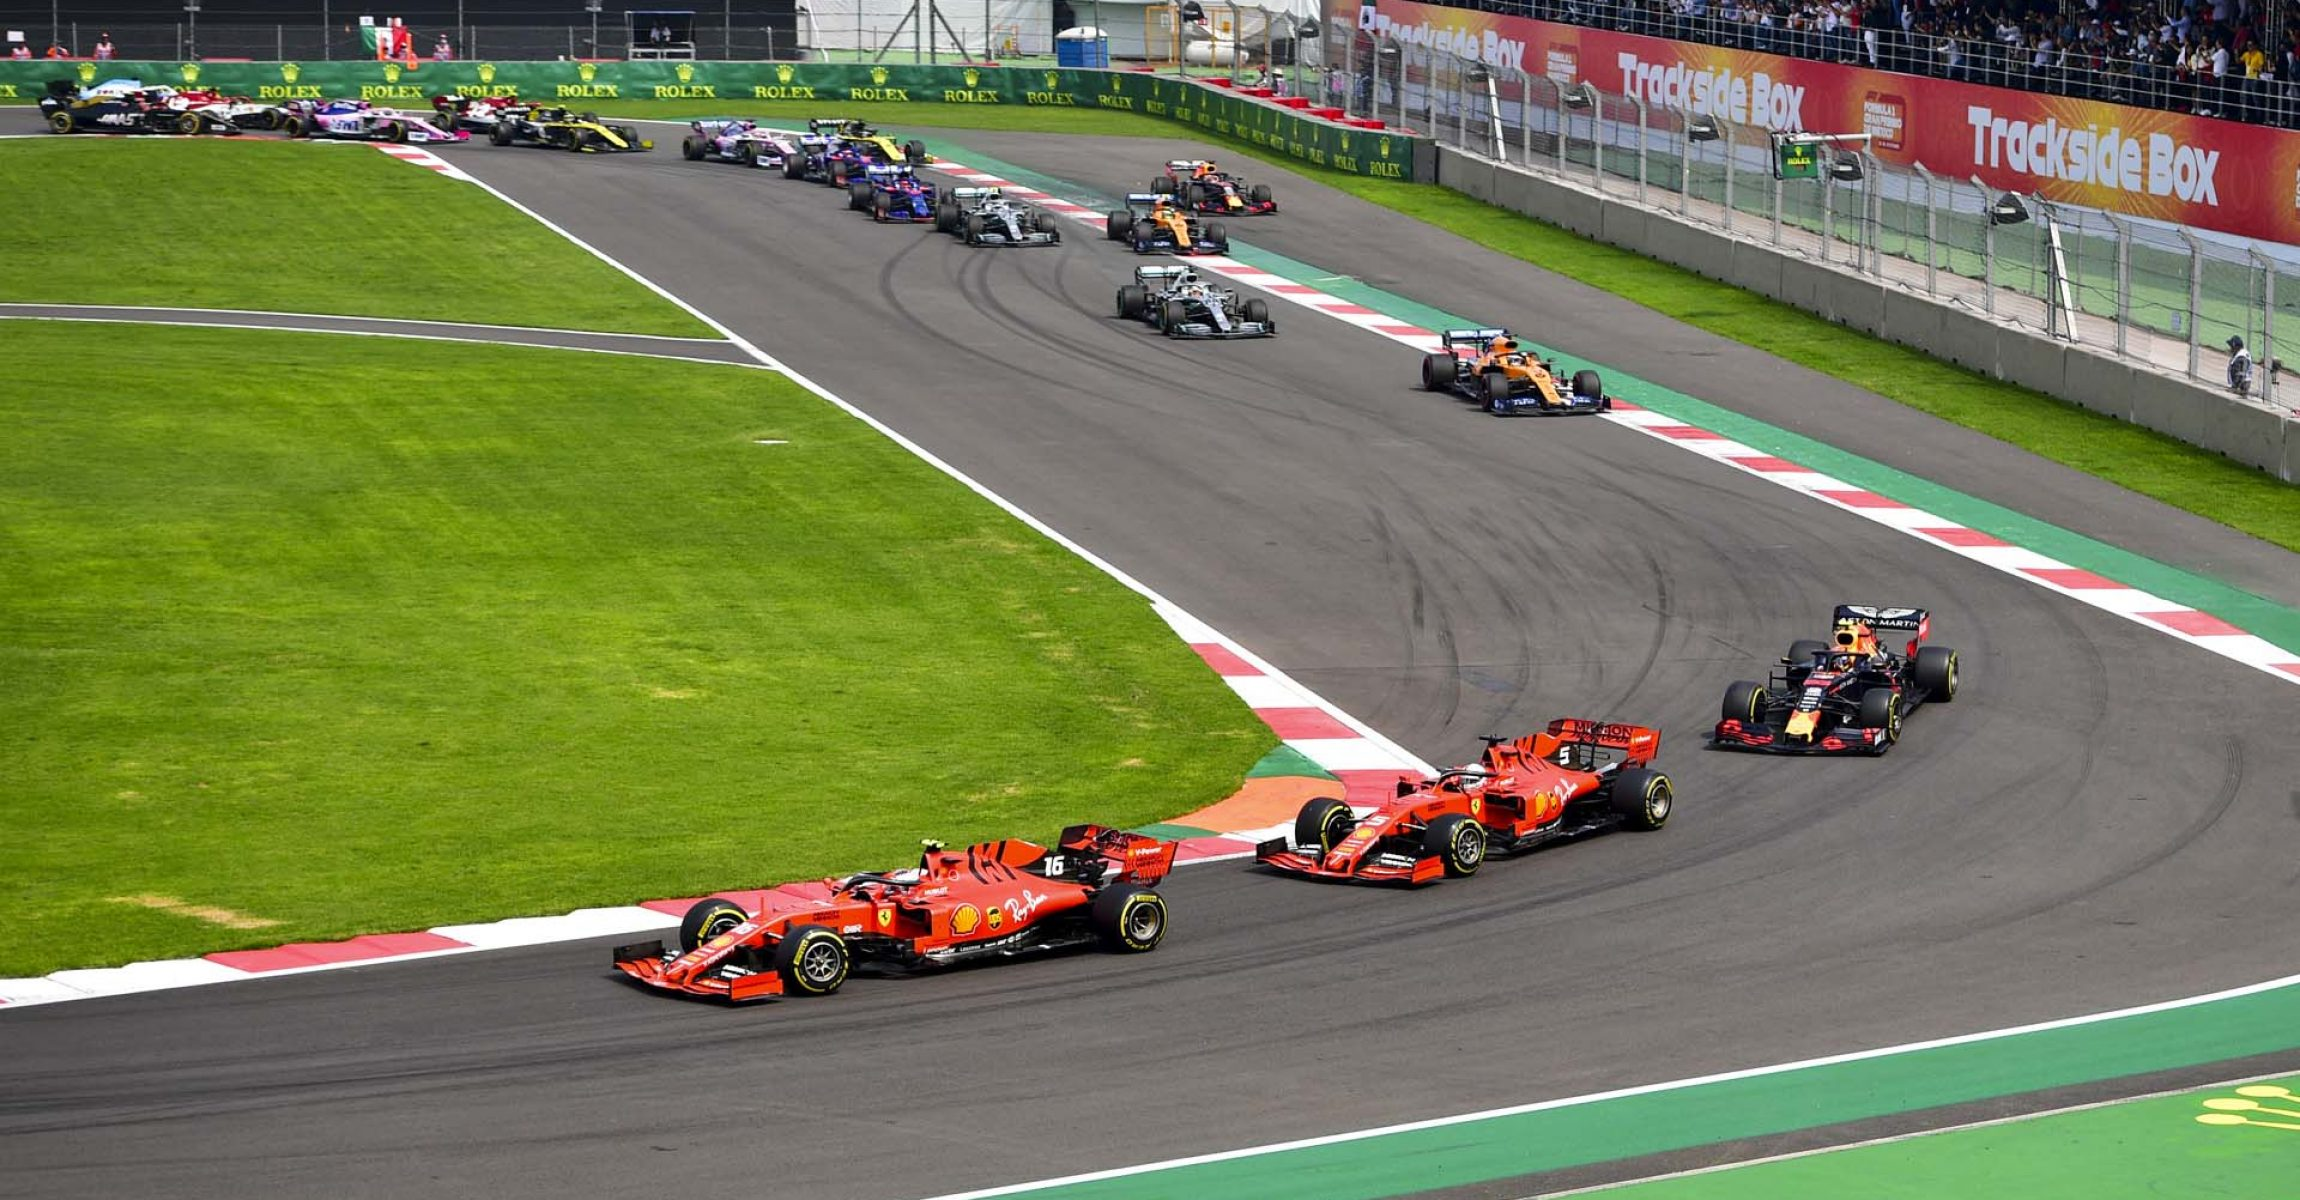 MEXICO CITY - OCTOBER 27: Charles Leclerc, Ferrari SF90 leads Sebastian Vettel, Ferrari SF90 and Alexander Albon, Red Bull RB15 at the start of the race during the 2019 Formula One Mexican Grand Prix at Autodromo Hermanos Rodriguez, on October 27, 2019 in Mexico City, Mexico. (Photo by Simon Galloway / LAT Images)